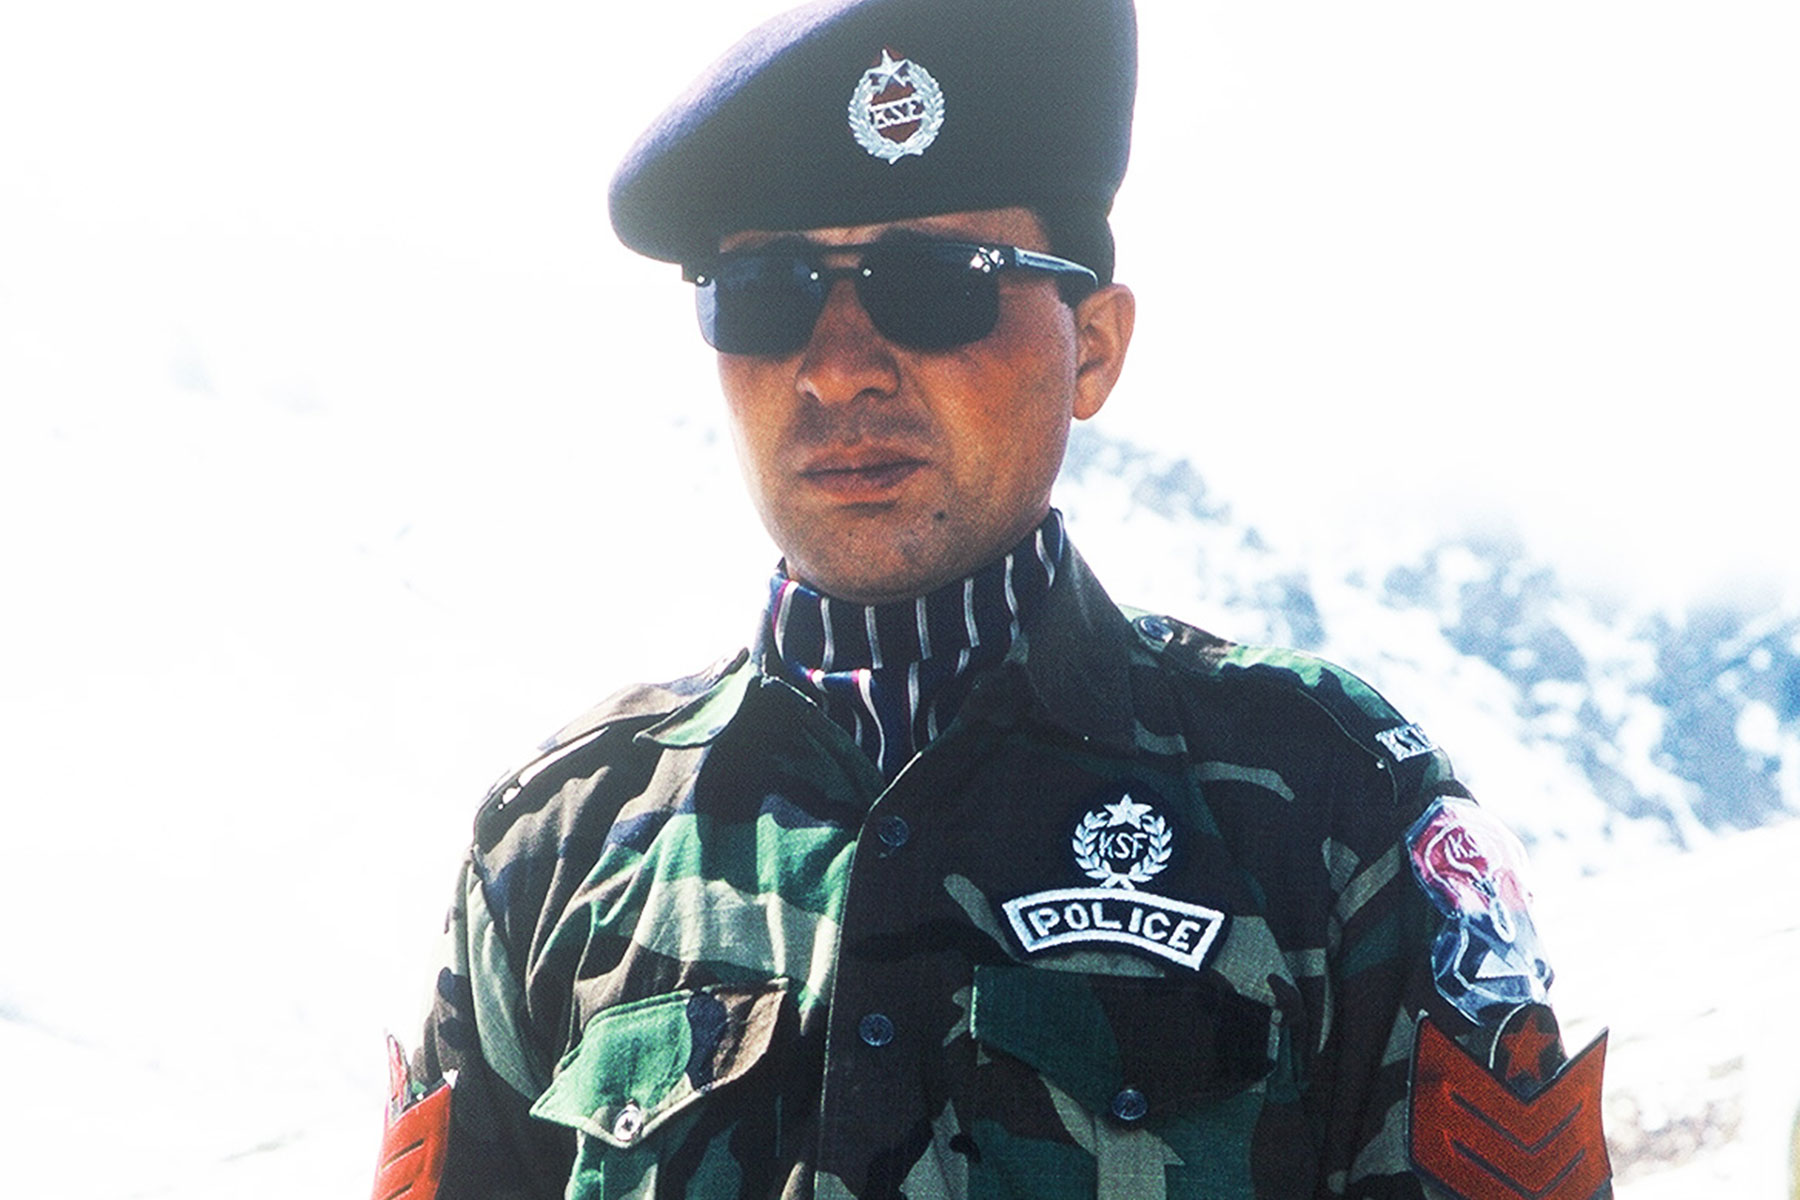 Sino-Pakistani border police - Pakistan Photo Journal - Steven Andrew Martin - Silk Road - Eastern Civilization